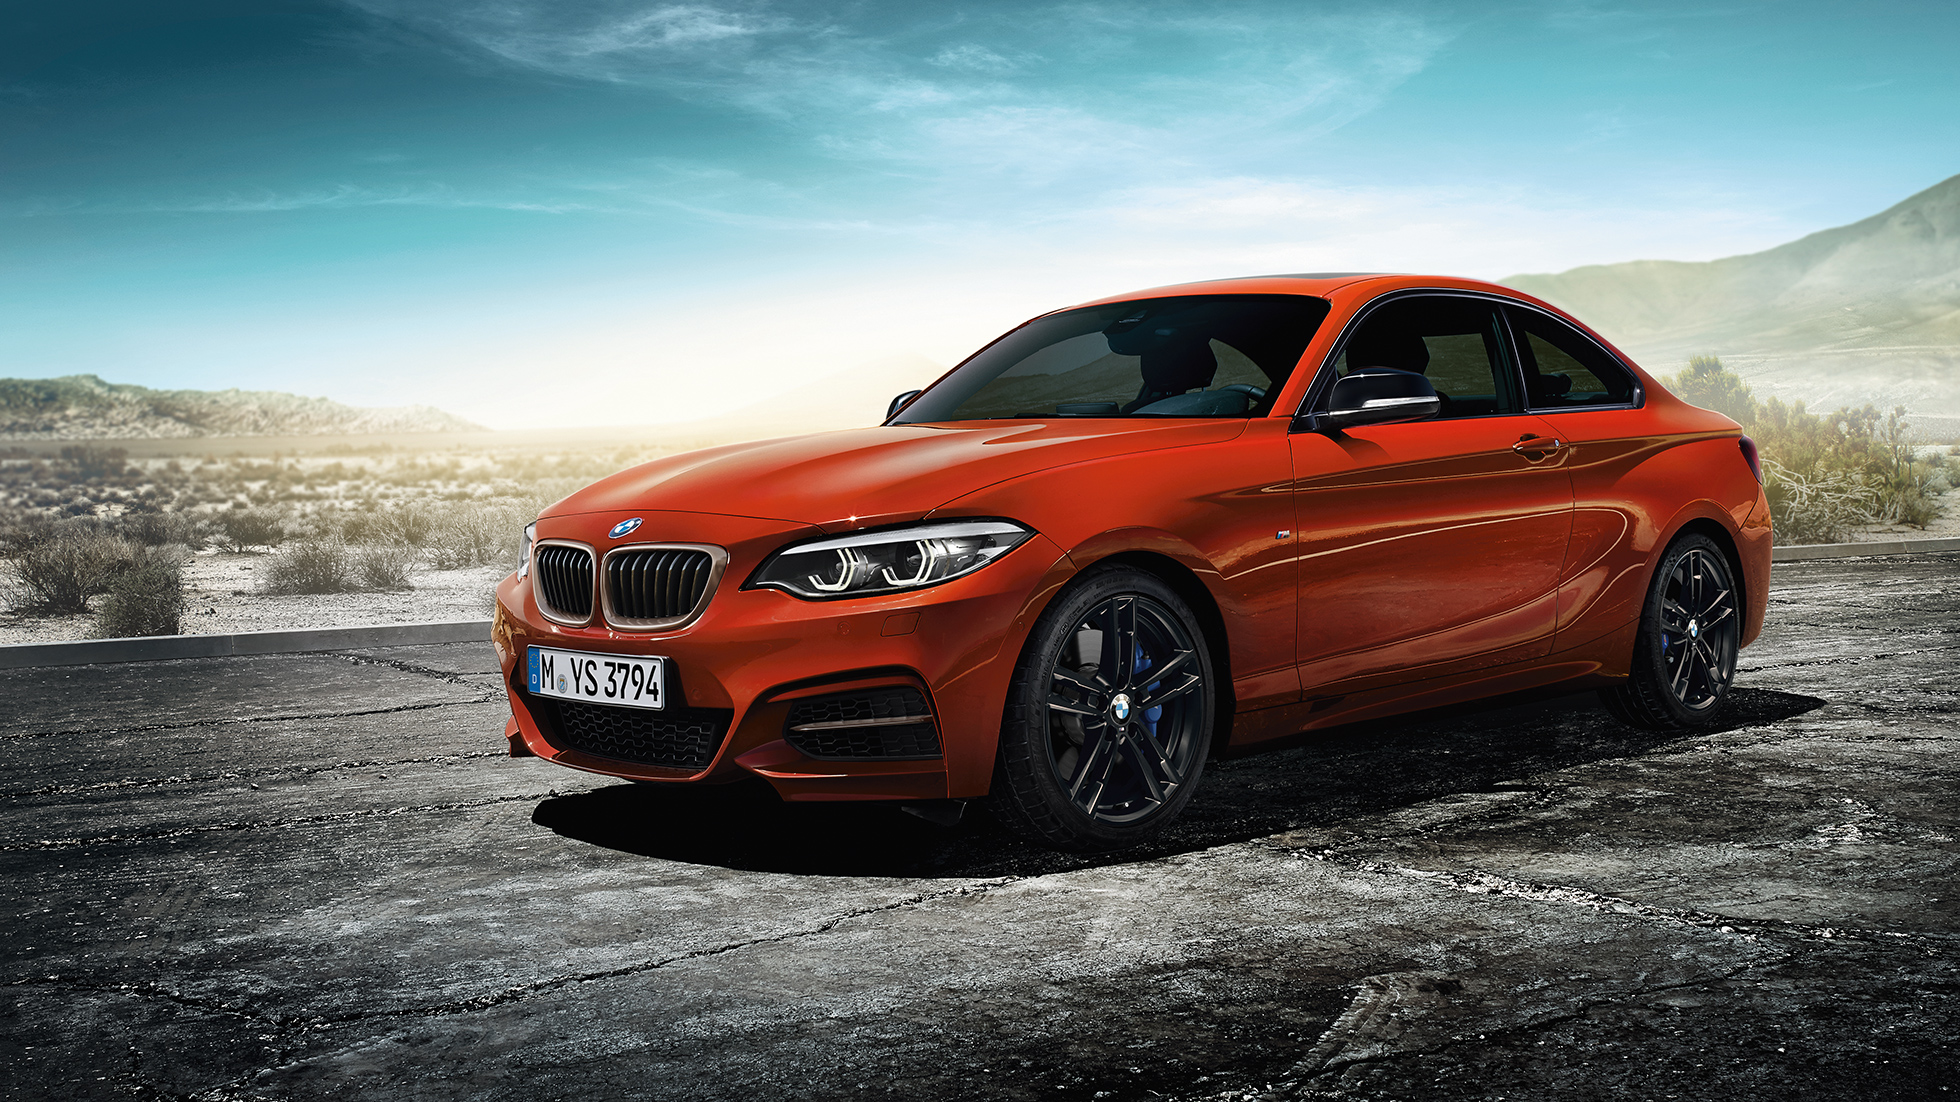 Bmw 2 Series Coupe Combines Sporty Dynamics And A High Degree Of Individuality Bmw Com Au